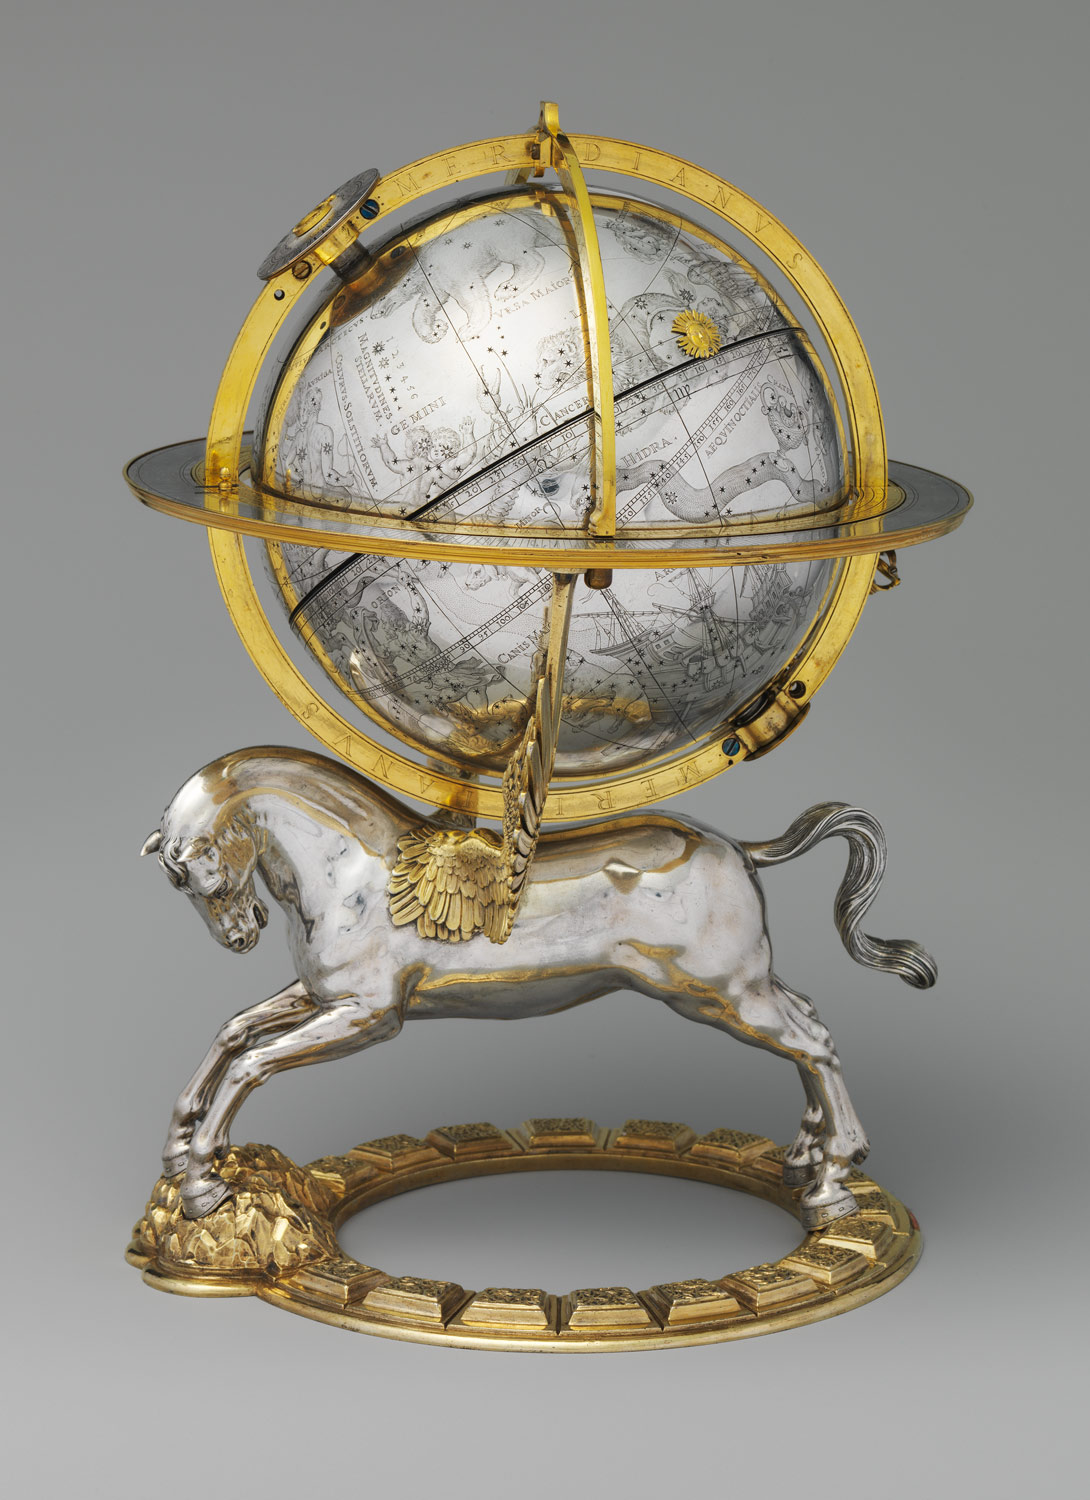 Celestial Globe with Clockwork